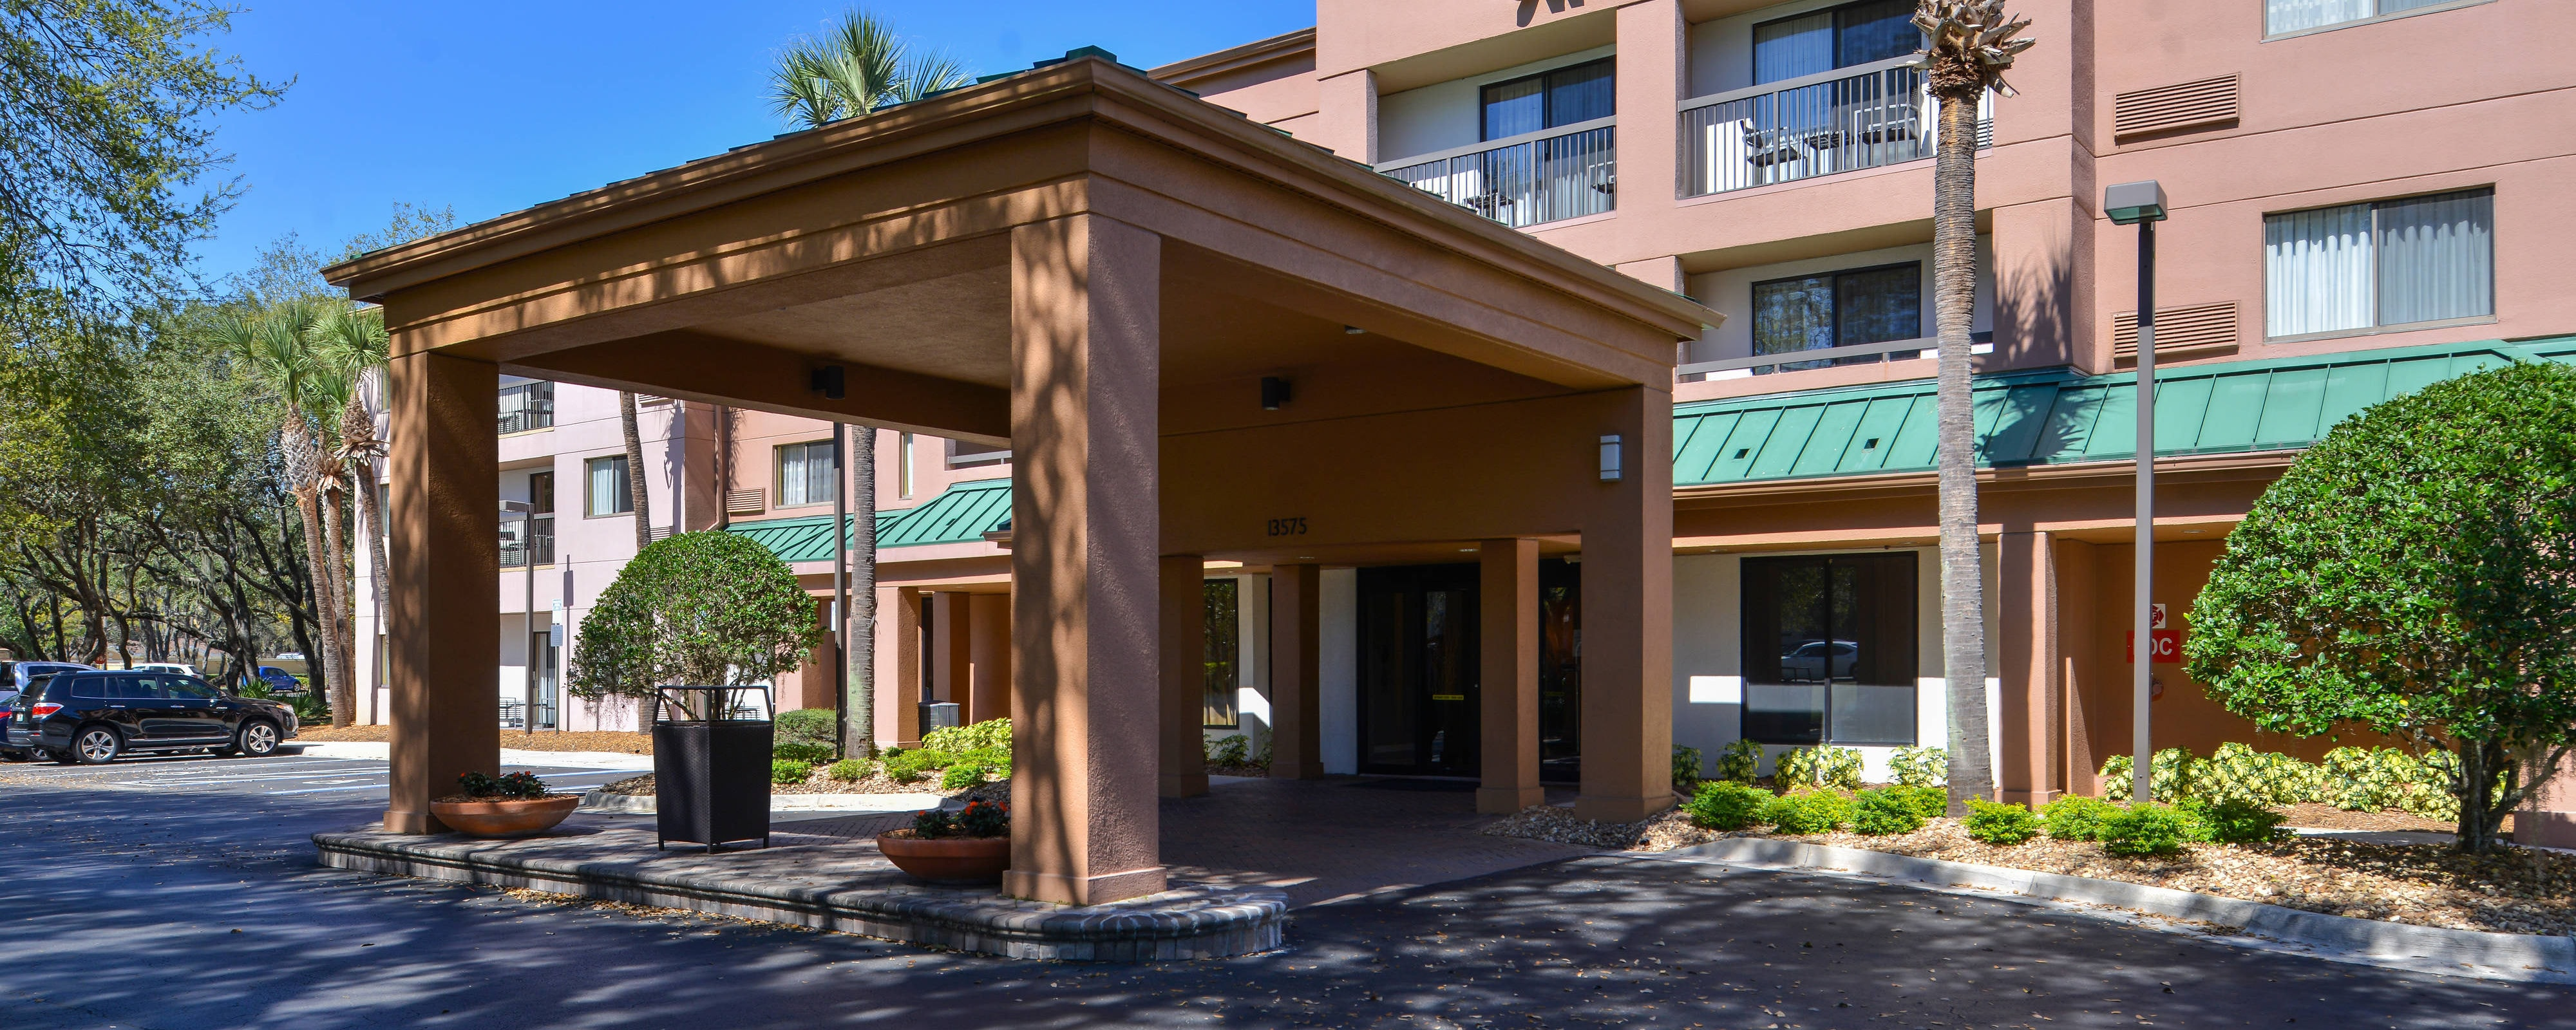 Hotels near Busch Gardens | Courtyard Tampa North/I-75 Fletcher